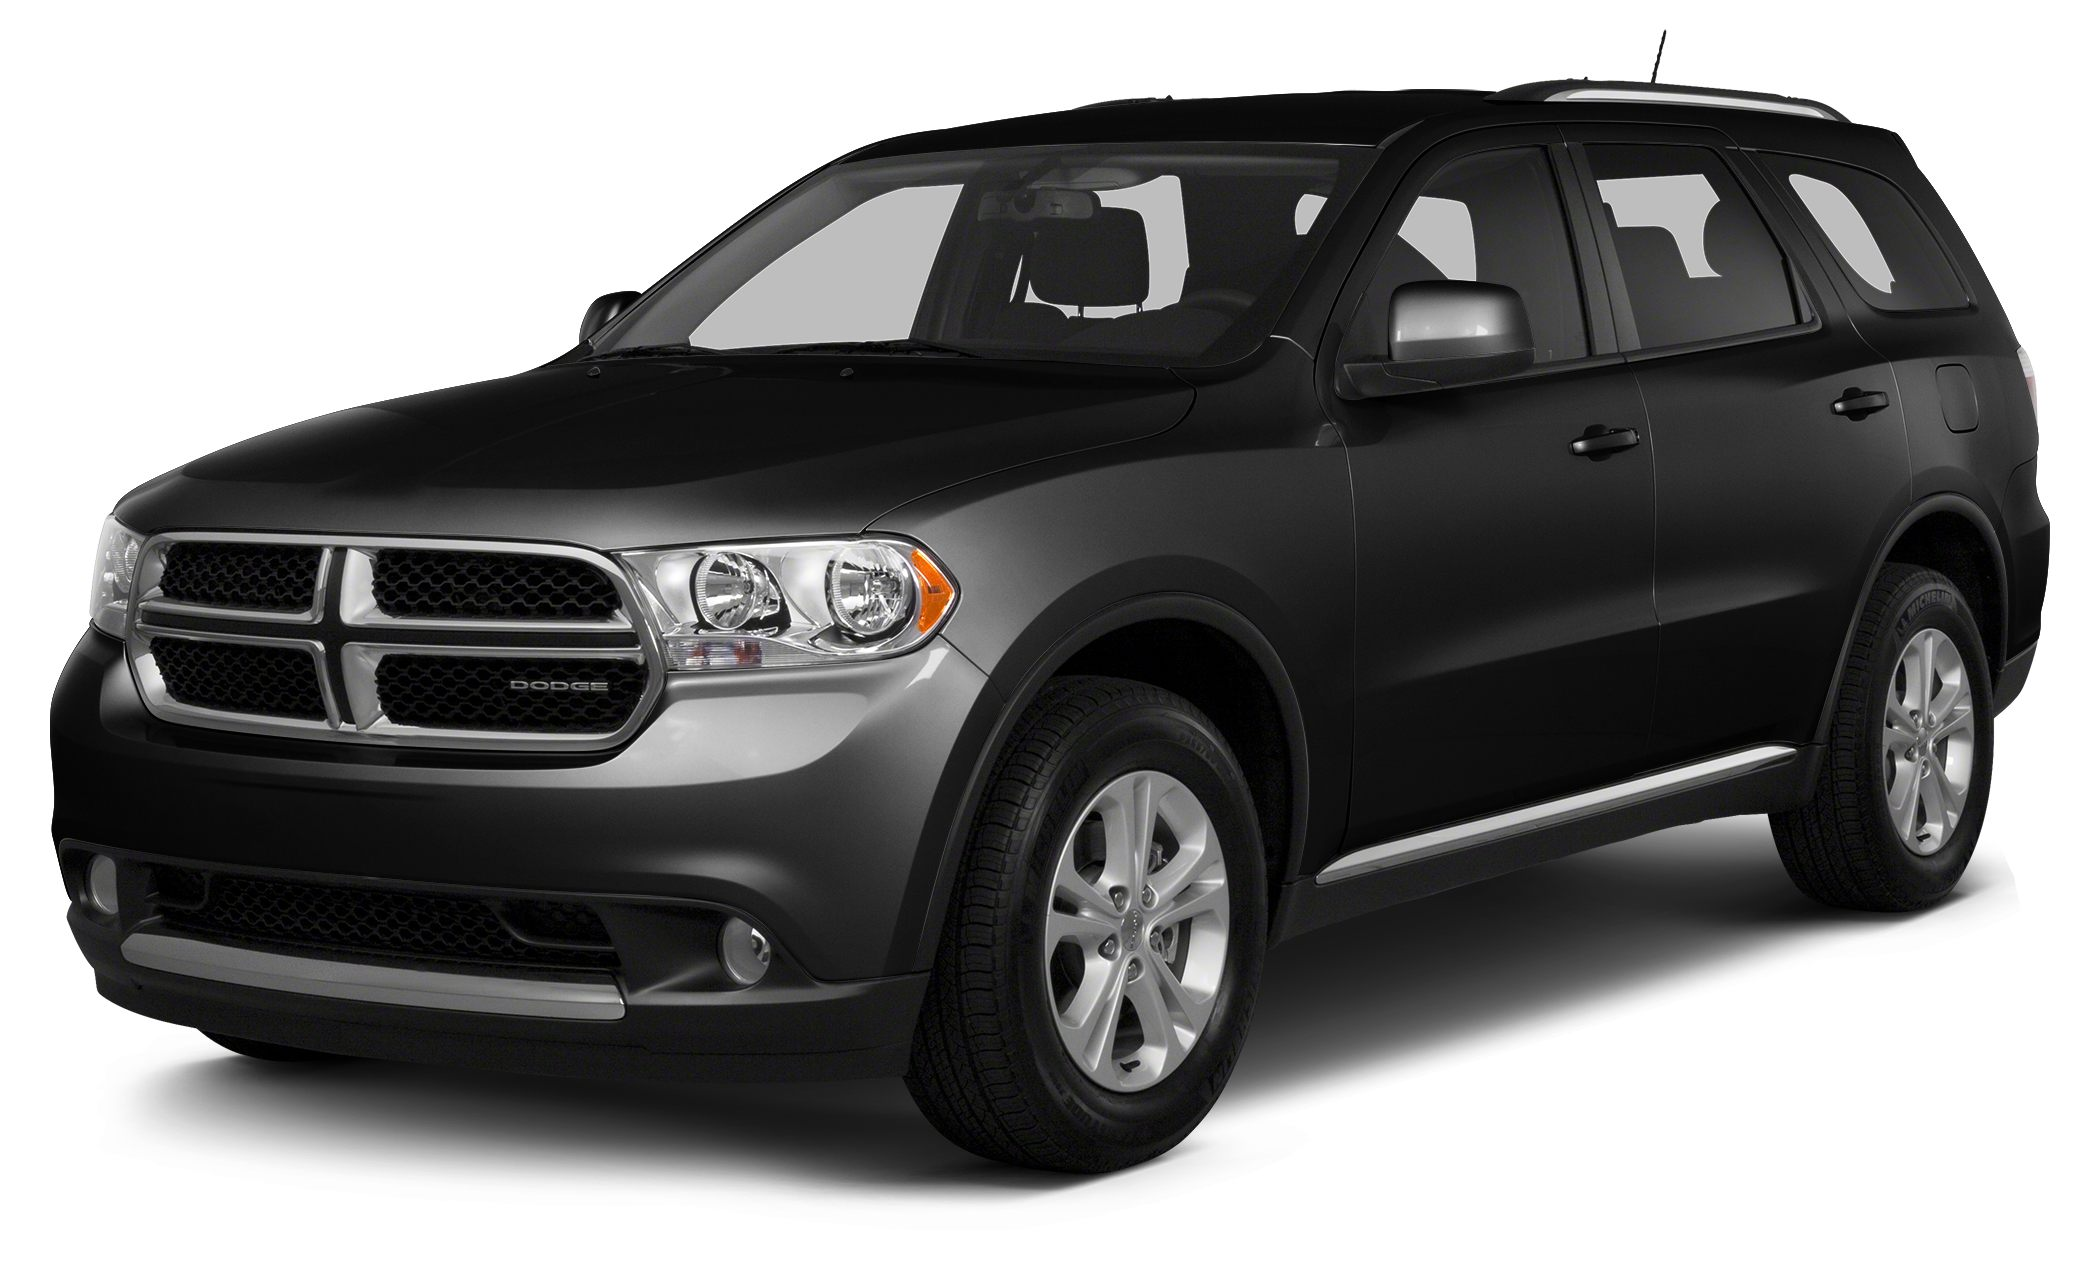 2013 Dodge Durango SXT Dodge Certified CARFAX 1-Owner Excellent Condition 3rd Row Seat Rear Ai